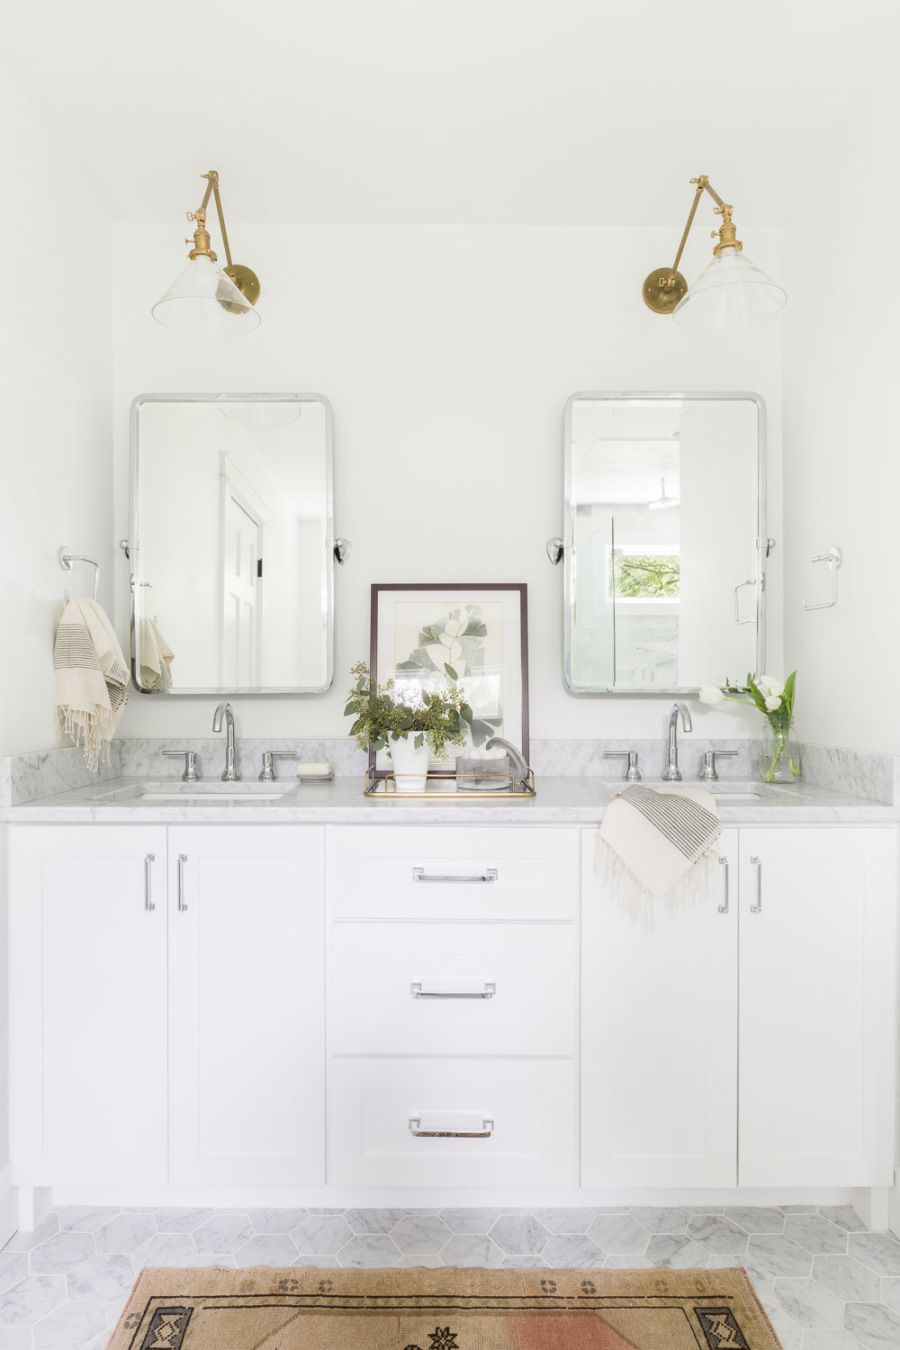 A Home That Nails The Bright And Airy Aesthetic Home Benjamin Moore Paint Colors Bathroom Bathroom Interior Design